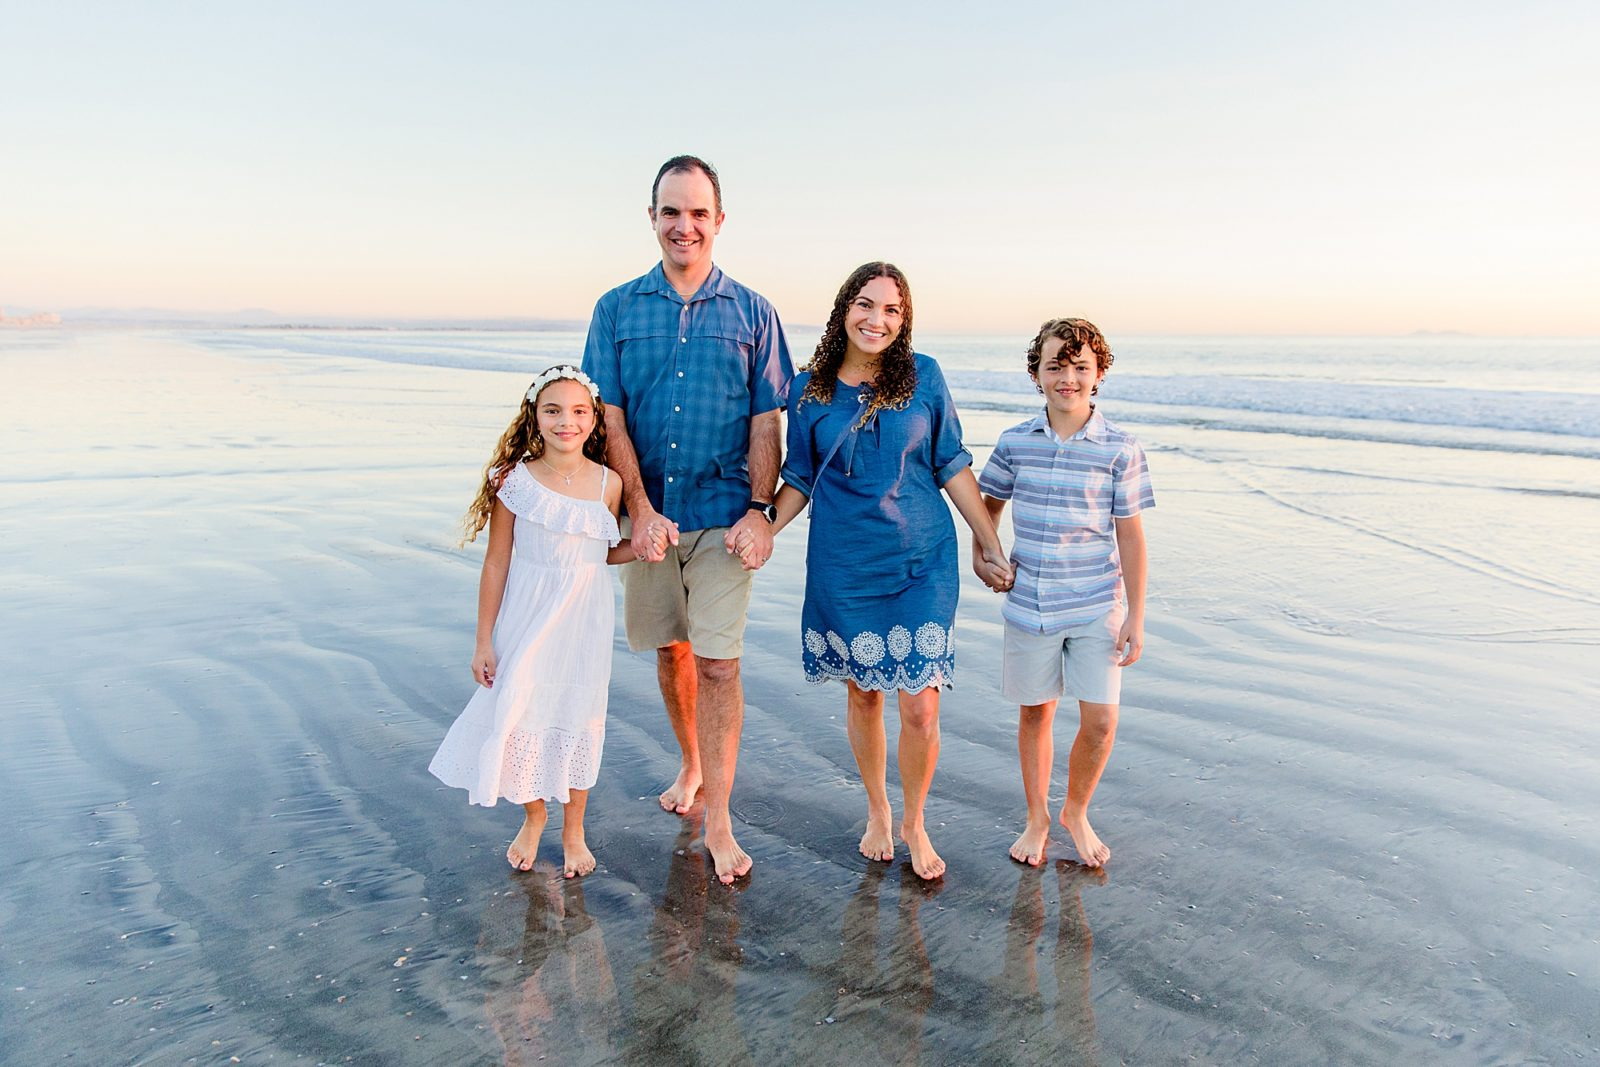 Family Photographer San Diego | San Diego Beach Photos